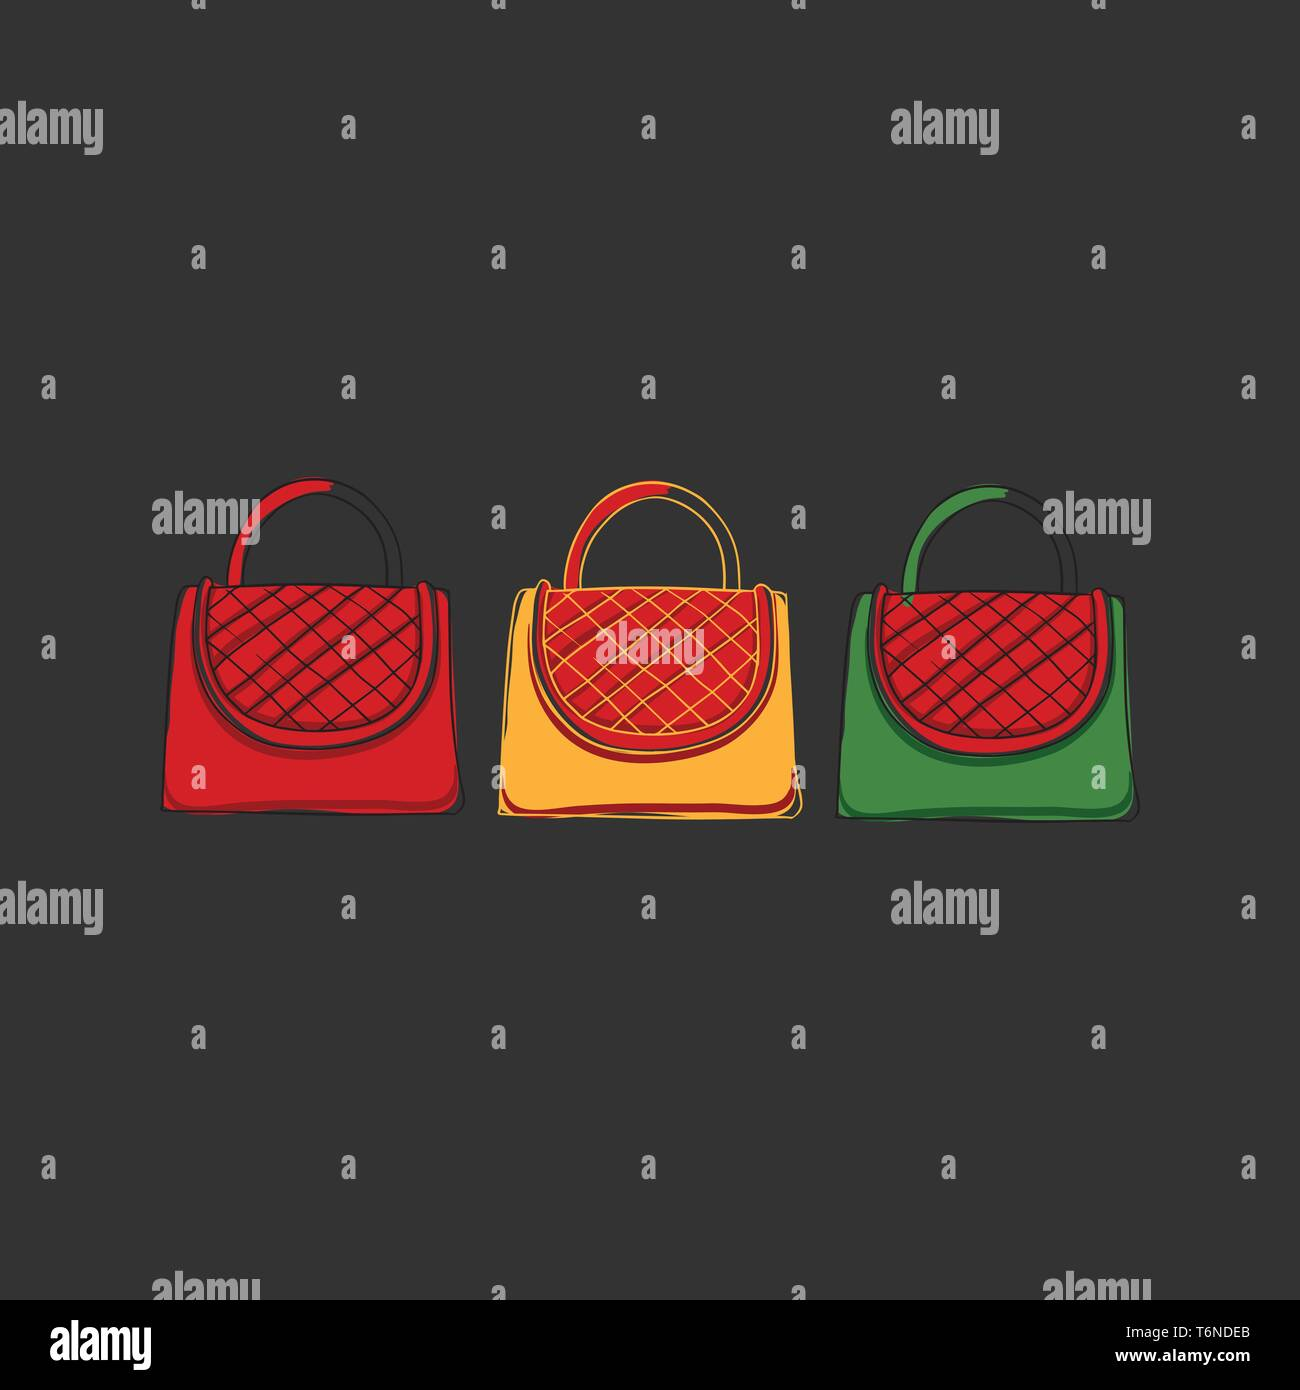 Clipart of three women's handbags in red  yellow and green colors knitted with checkered patterns on the front portion appears over a black background - Stock Vector